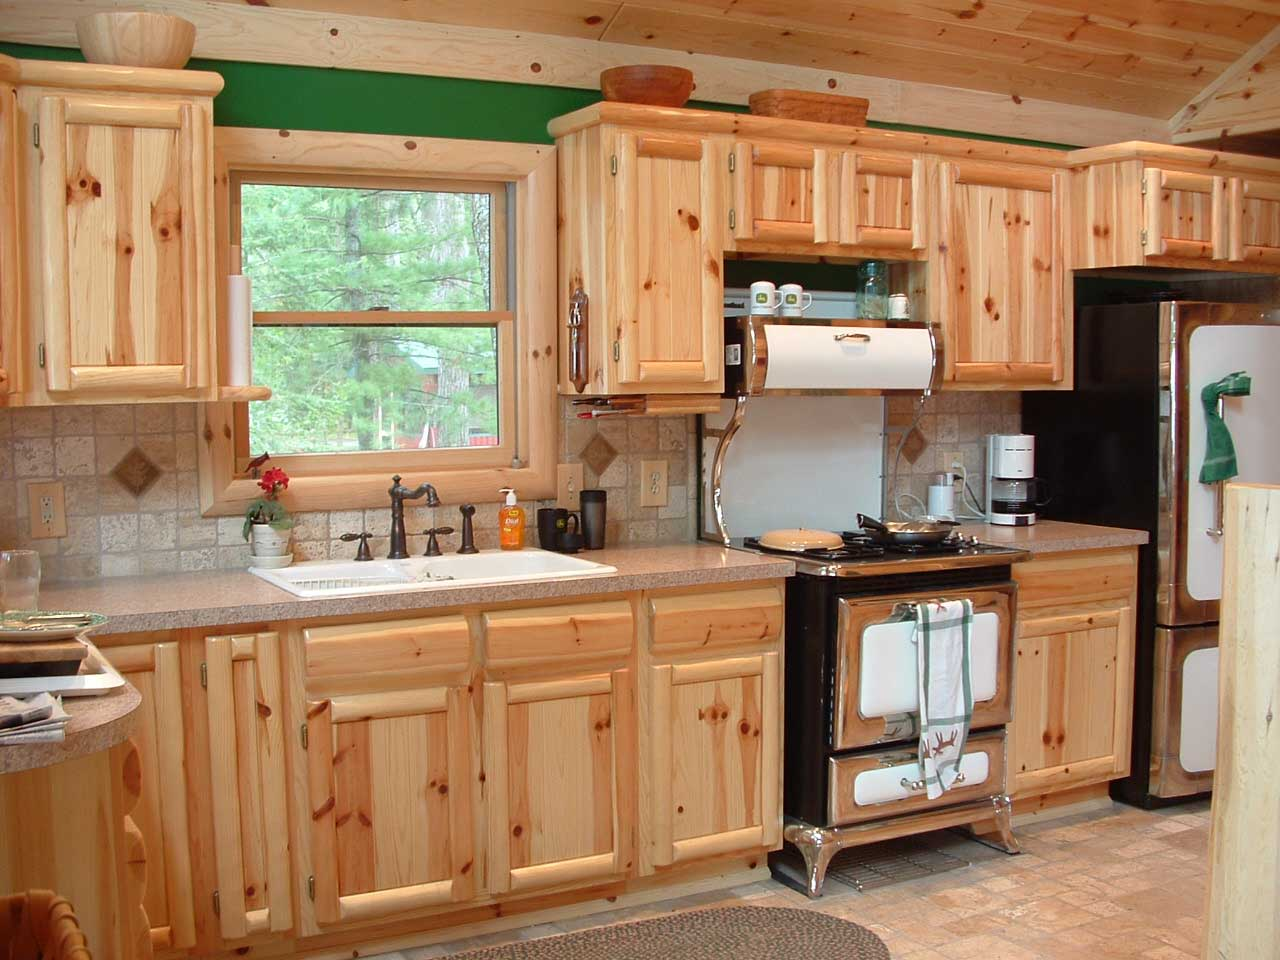 Cabinetry kitchens and baths timber country cabinetry for Kitchen units